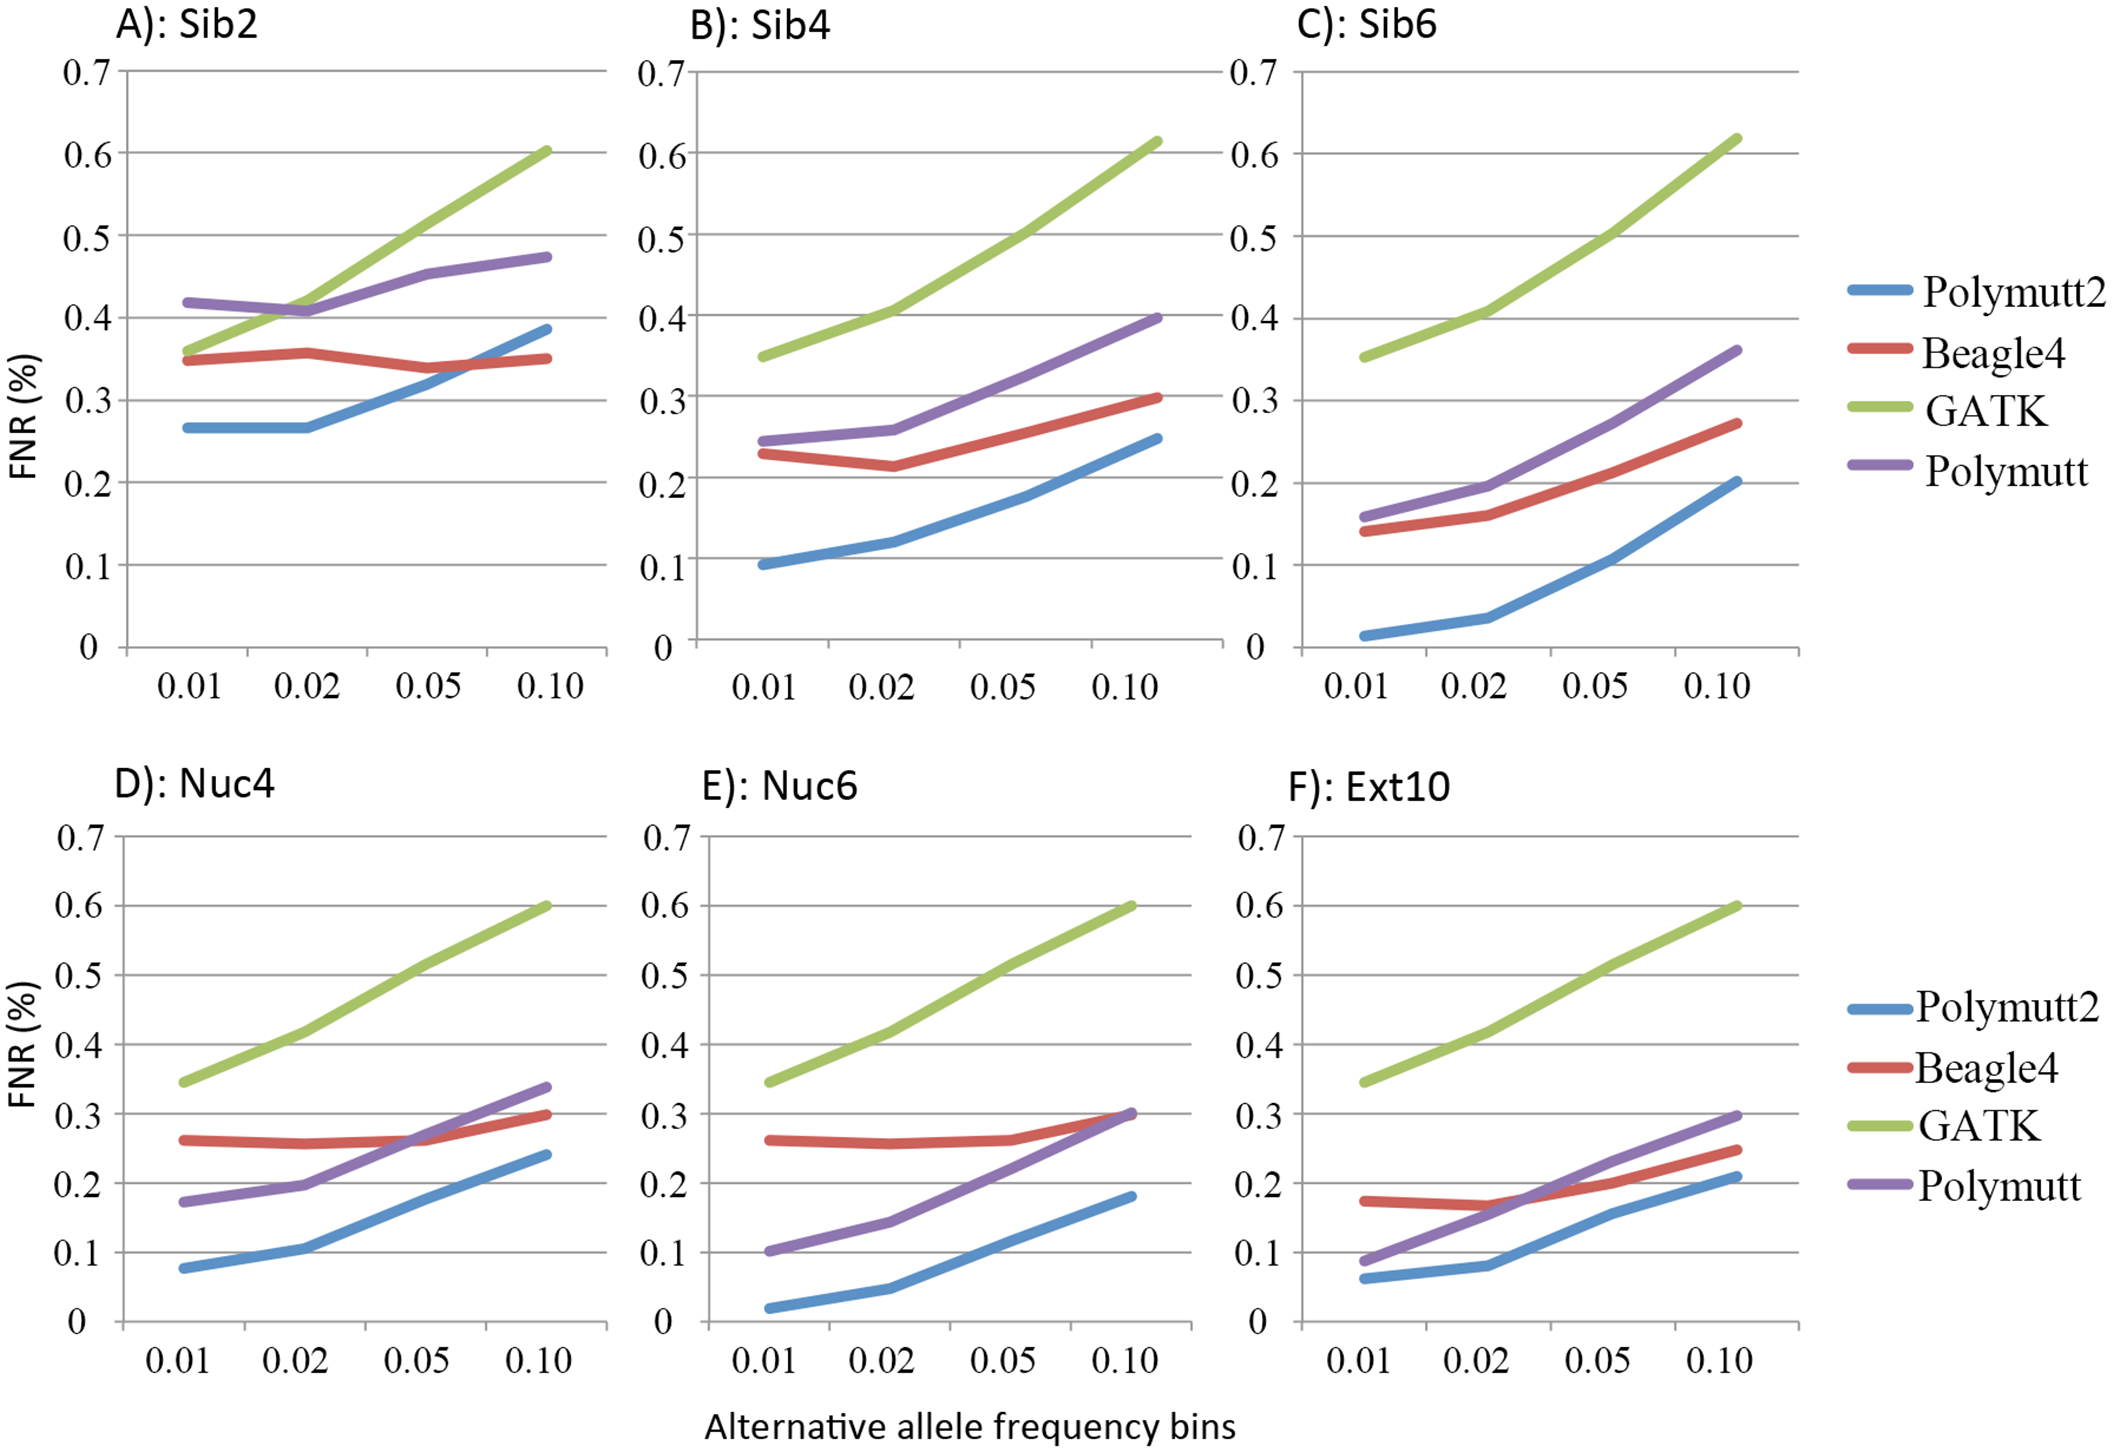 The FNR (%) of the heterozygotes in 6 pedigrees from four callers (Polymutt2, Beagle4, GATK and Polymutt) for variants with alternative allele frequencies in 4 bins in the range of [0, 0.1] at sequencing coverage of 20X.